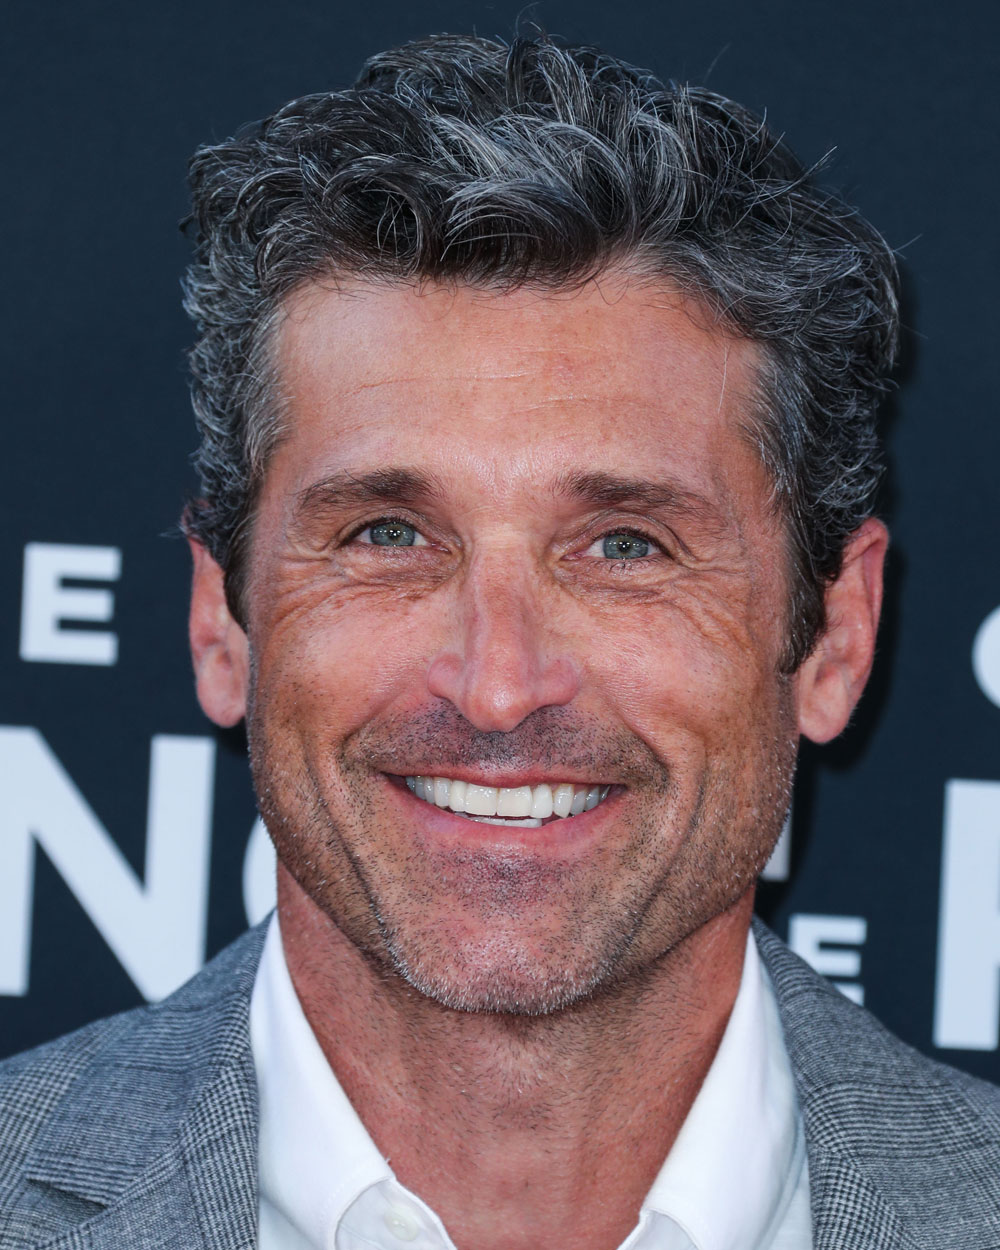 Patrick Dempsey talks about the cancer care center he opened in his mother's honor